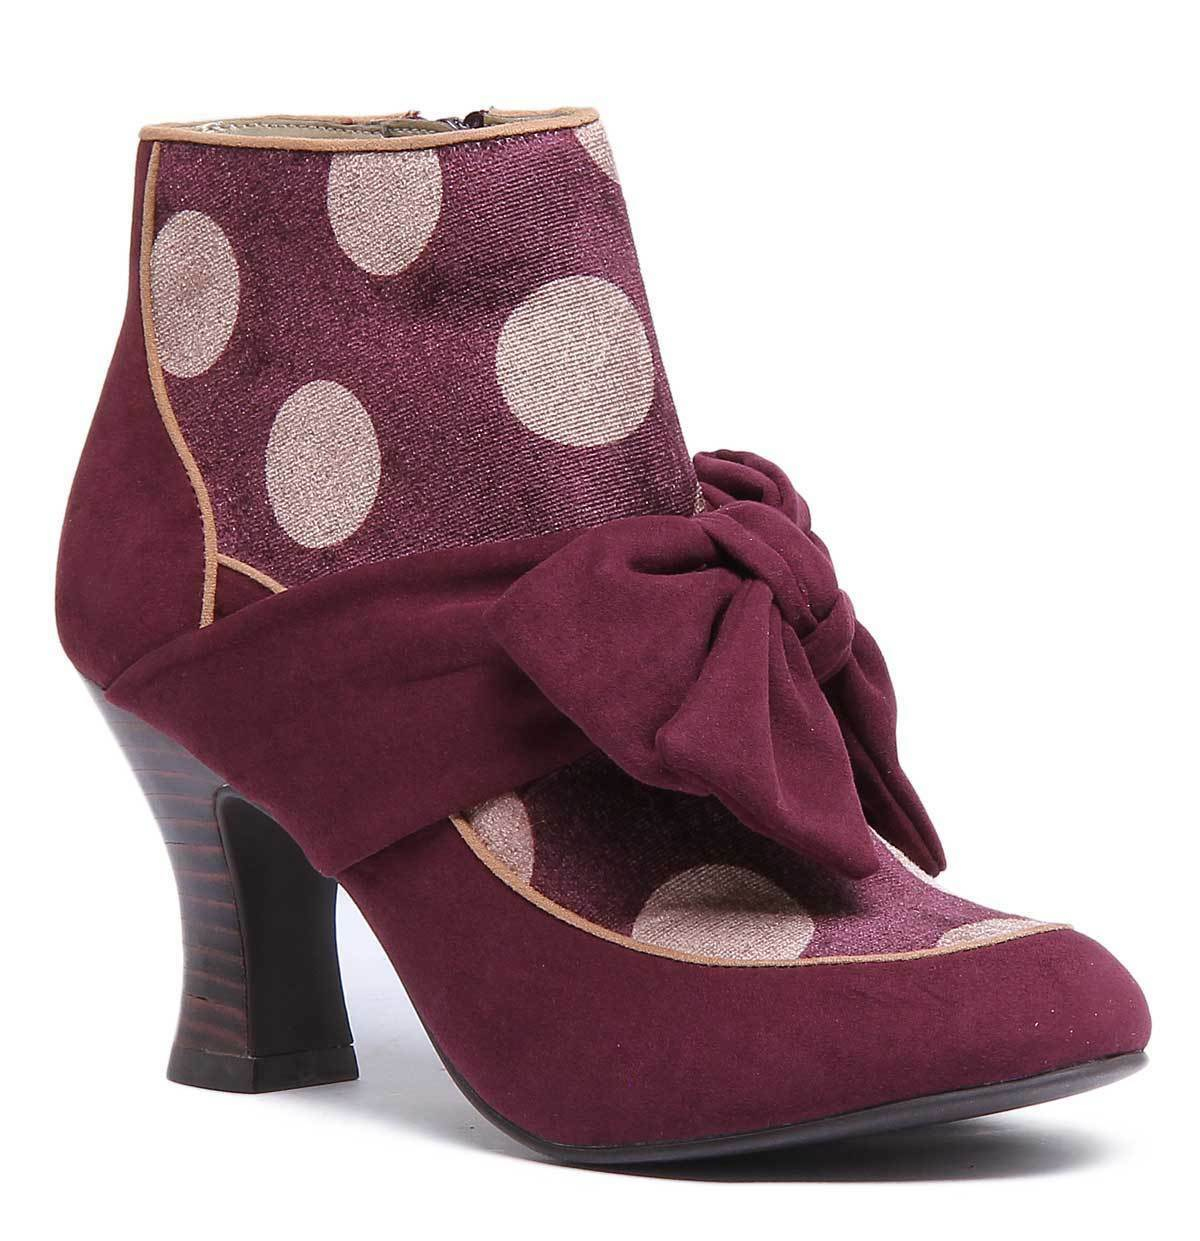 Ruby Shoo Seren Damenschuhe Textile Burgundy Ankle Stiefel Stiefel Ankle 4bb239